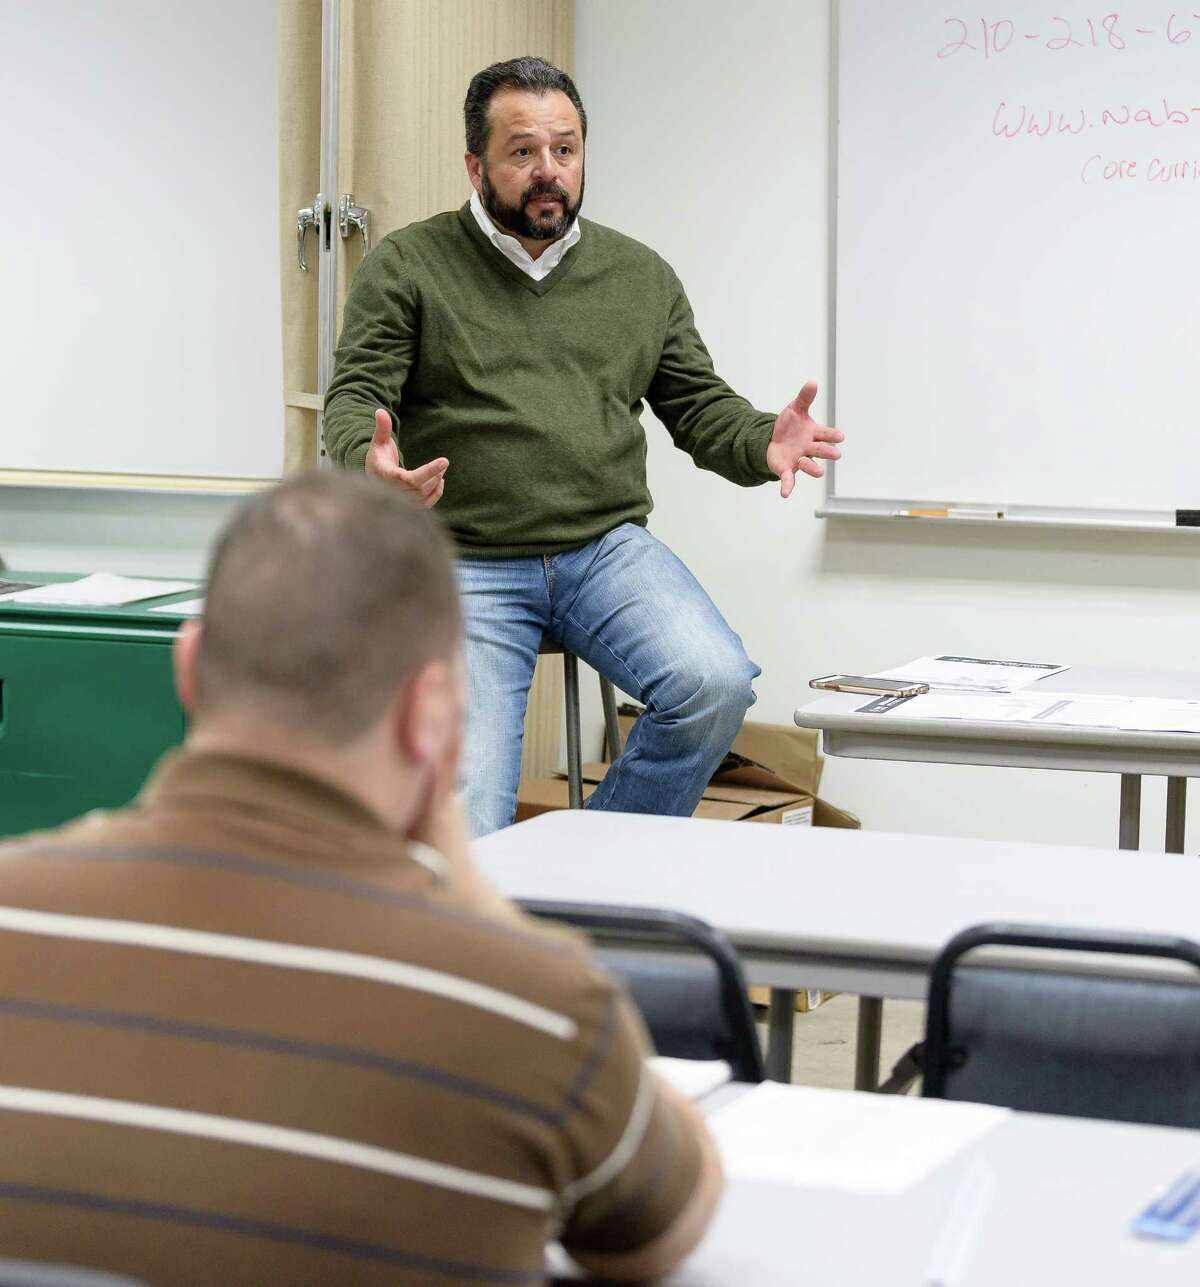 Paul Puente, Executive Secretary of the Houston Gulf Coast Building and Construction Trades Council talks to a class of new plumber apprentices at the Plumbers Apprenticeship School on Friday, December 1, 2017 in Houston Texas.